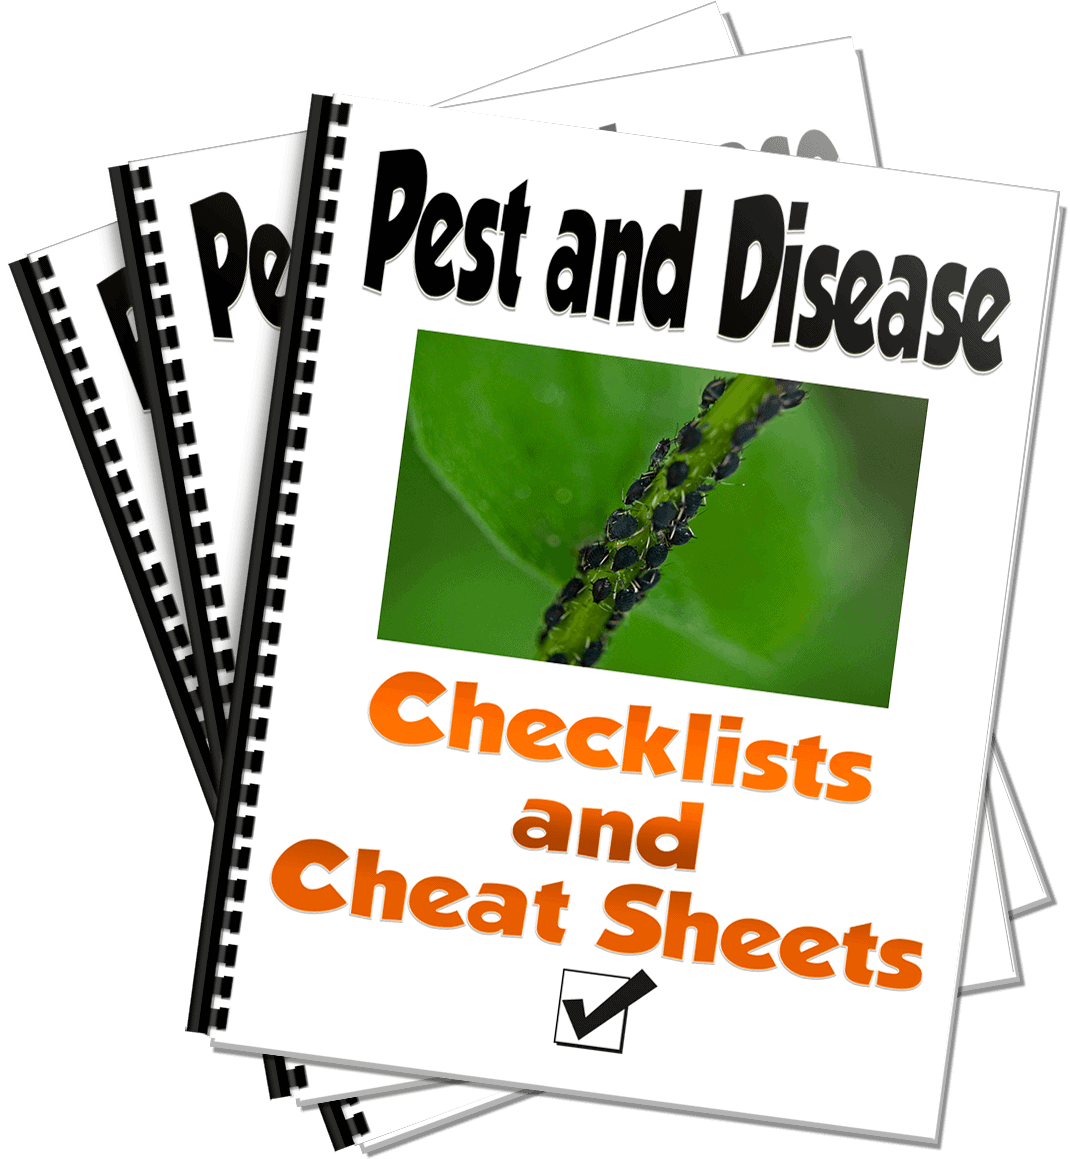 Pepper pests and disease checklists and cheat sheets